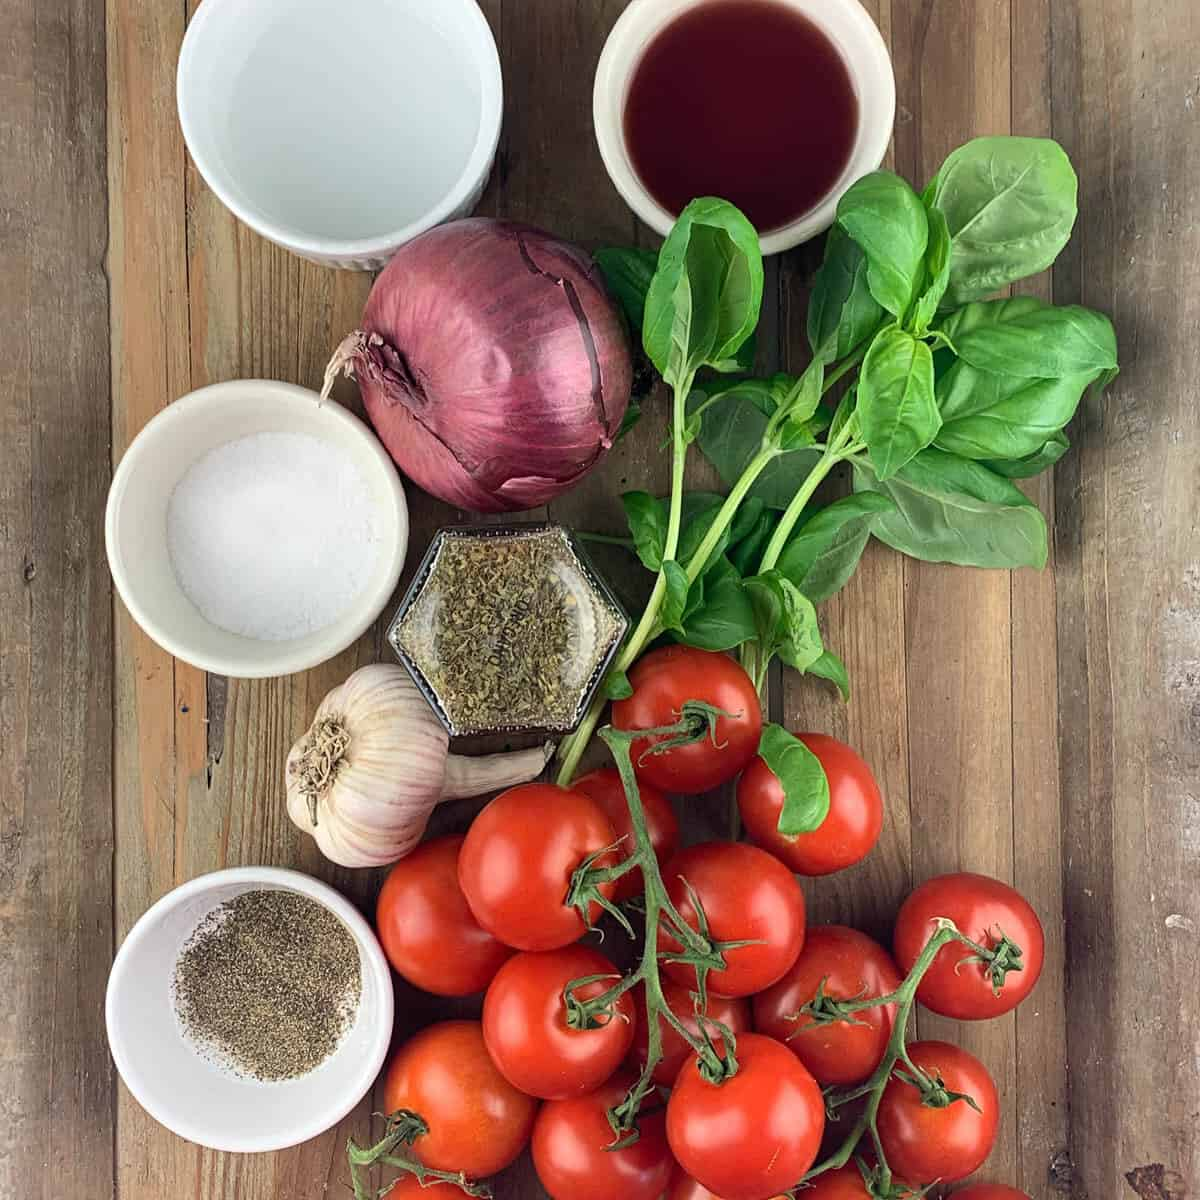 overview of tomato salad ingredients on wooden background